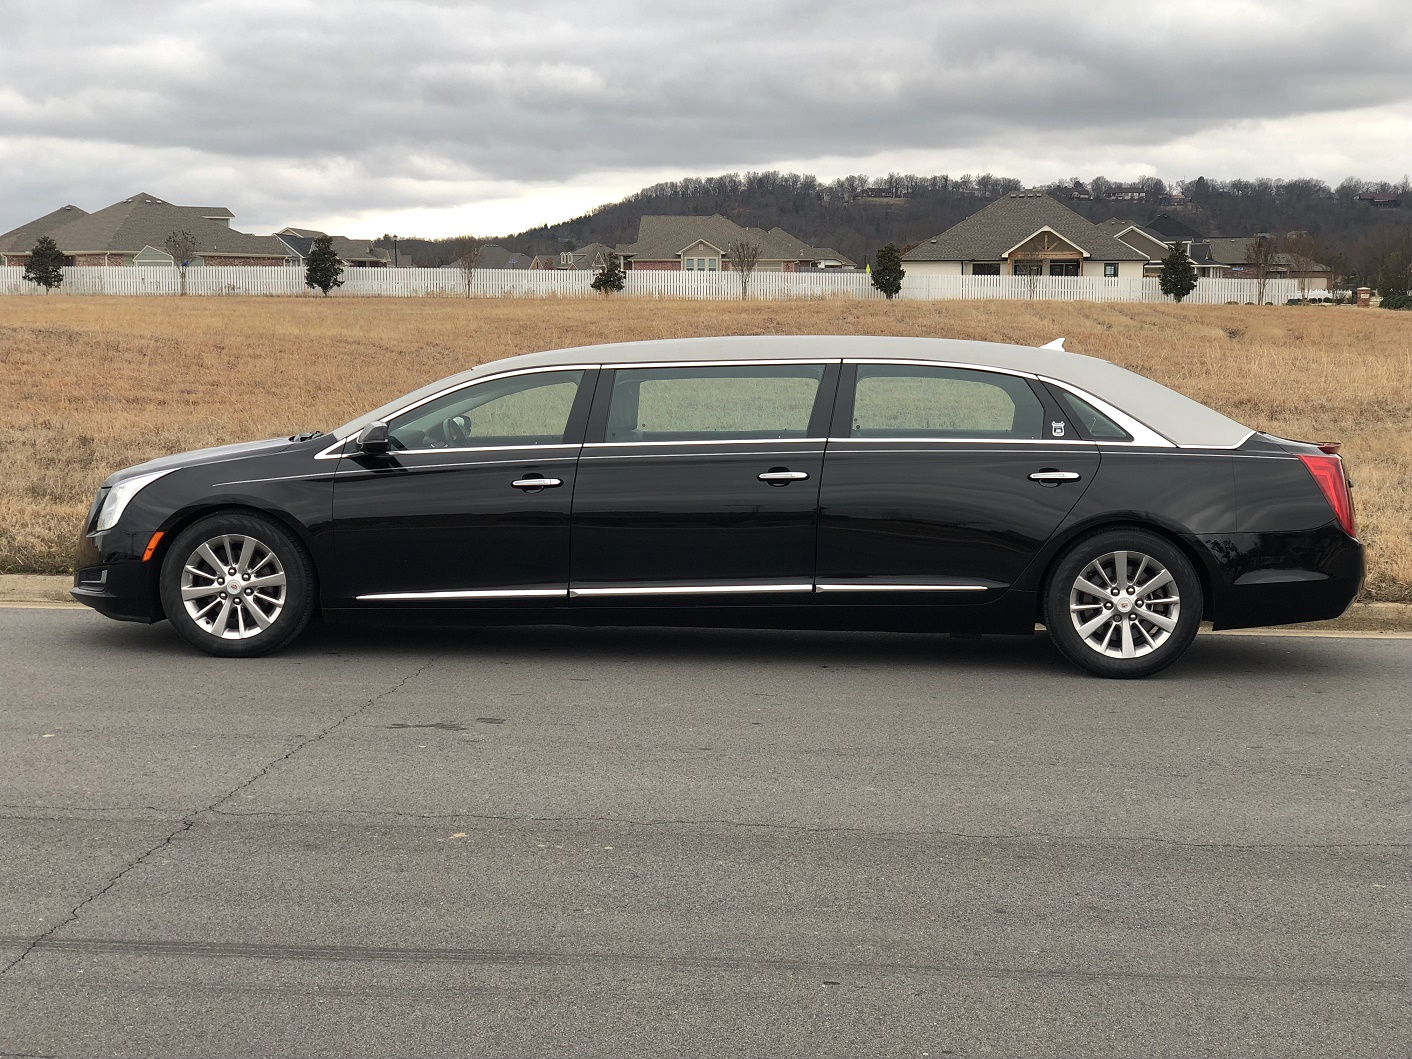 2014 Armbruster Stageway Silver Black Six Door Funeral Limousine for Sale